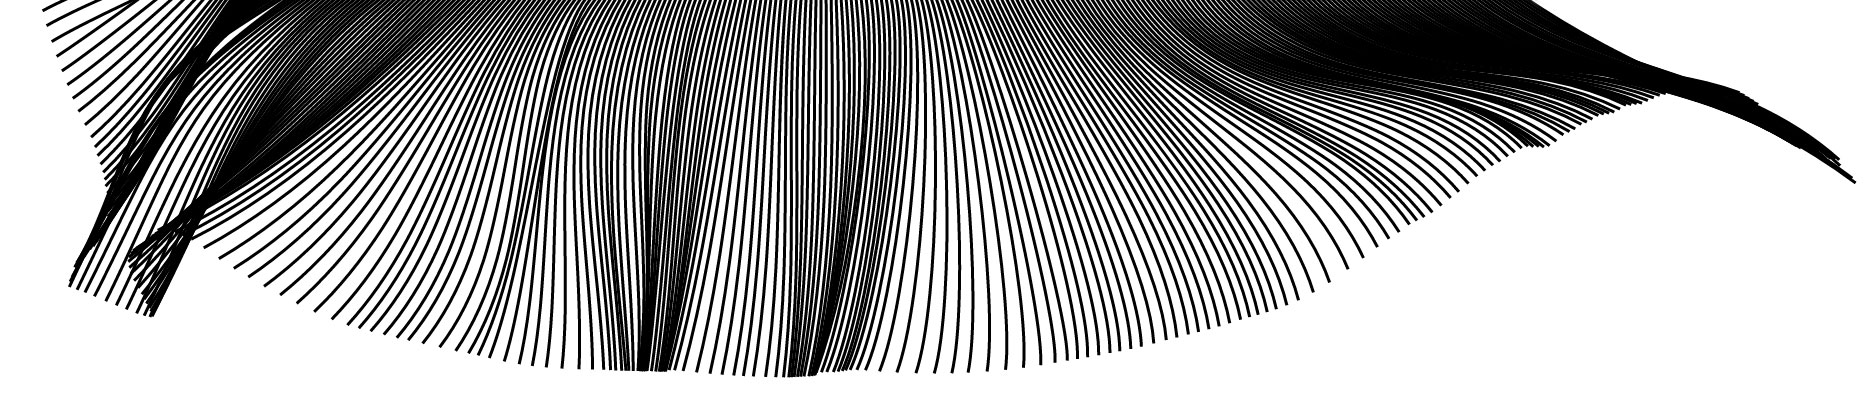 Perlin Noise thick lines wave